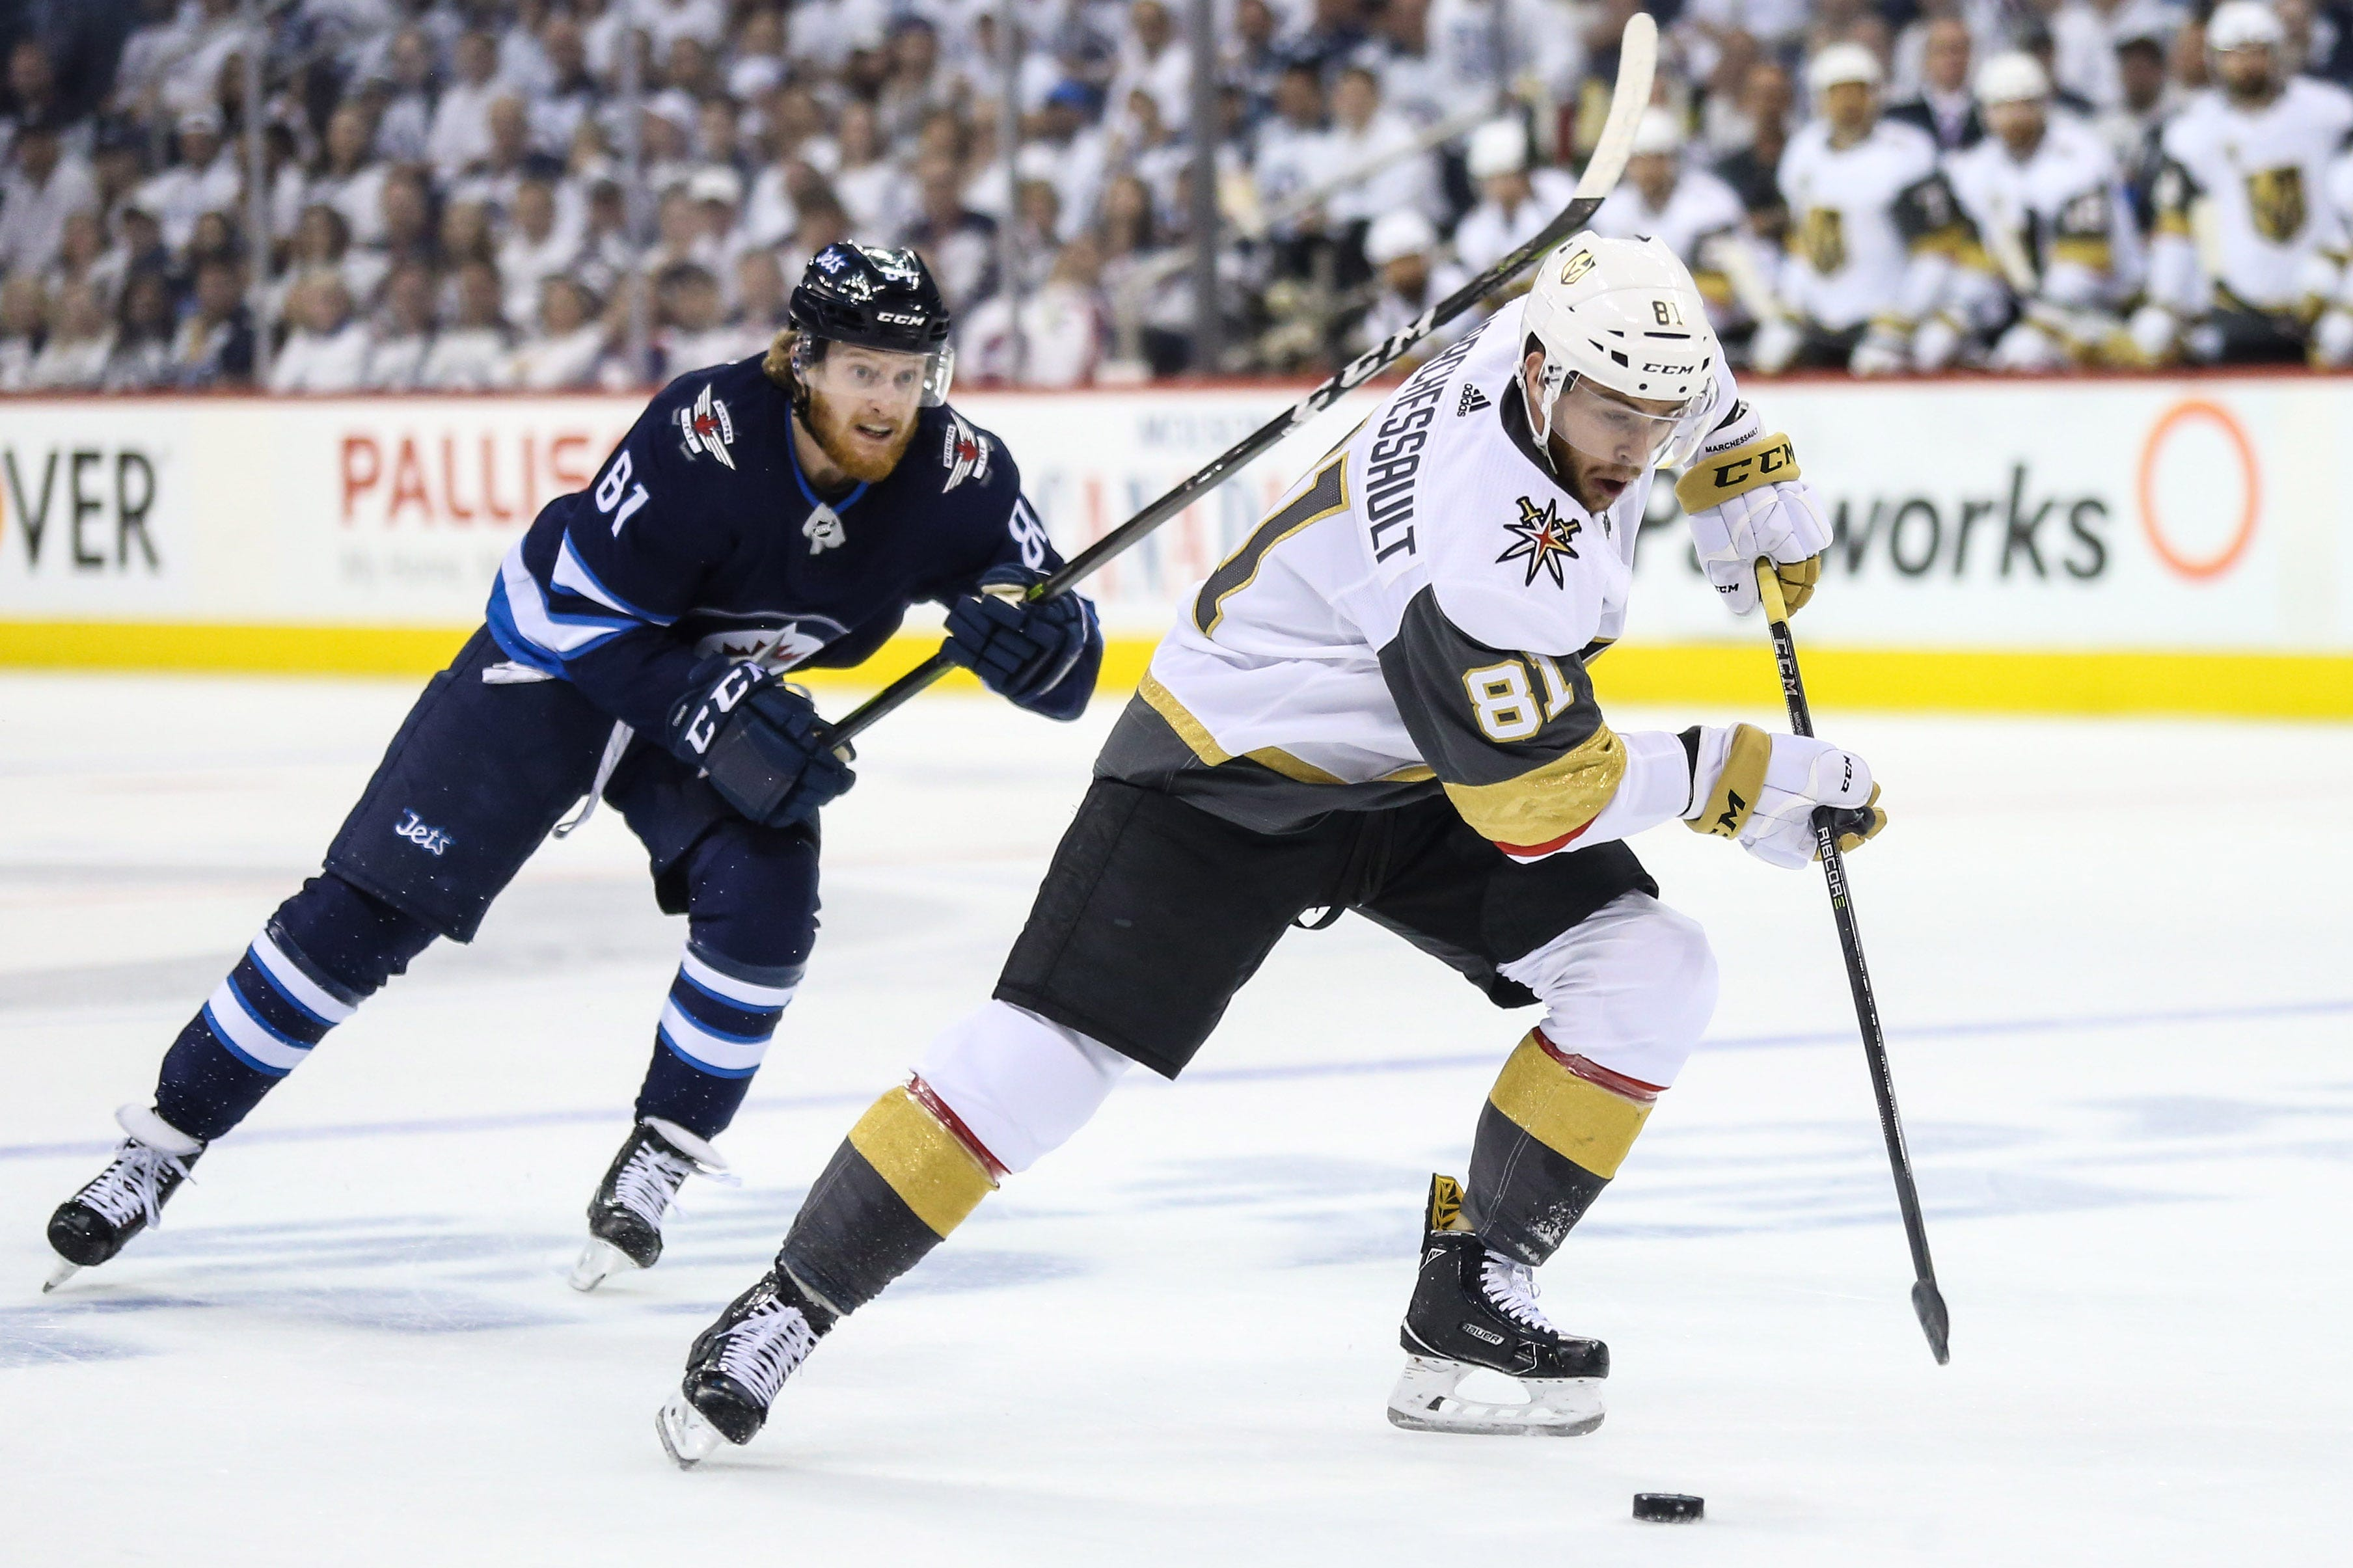 Vegas Golden Knights center Jonathan Marchessault skates with the puck past Winnipeg Jets left wing Kyle Connor to score a goal during the first period in game two of the Western Conference Final of the 2018 Stanley Cup Playoffs at Bell MTS Centre in